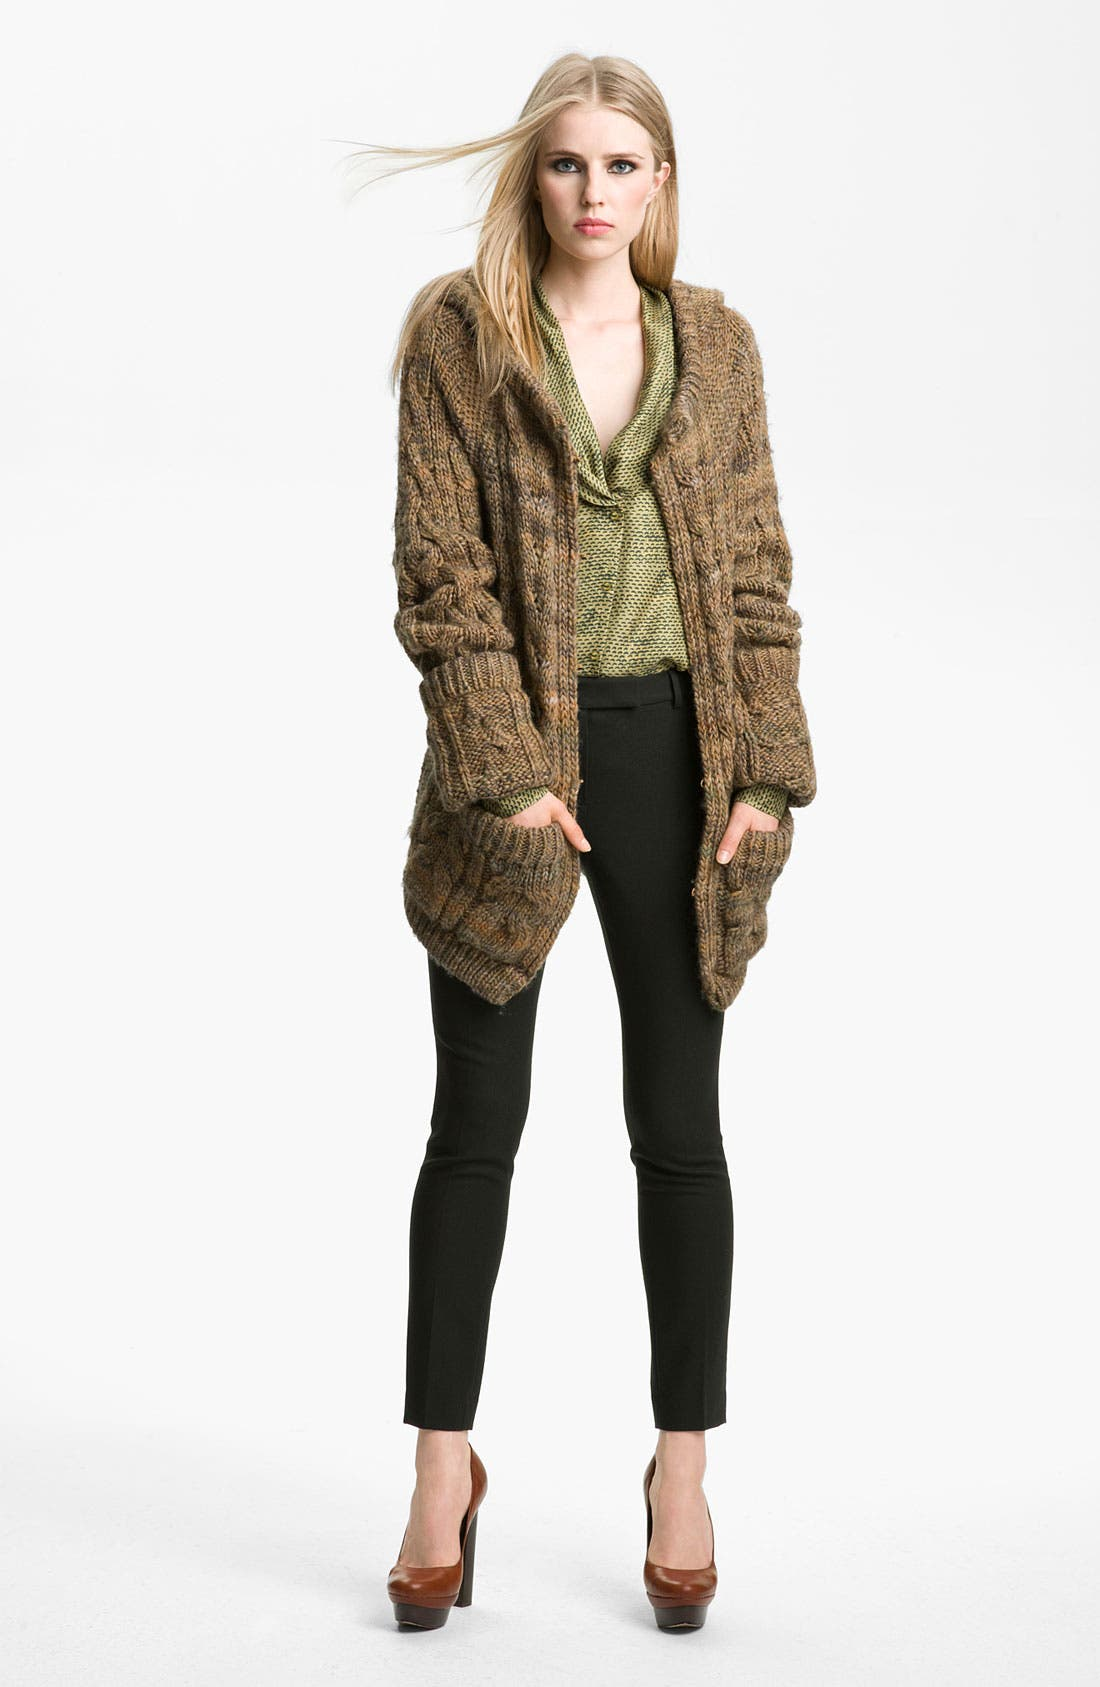 Alternate Image 1 Selected - Rachel Zoe 'Beha' Hooded Cable Sweater